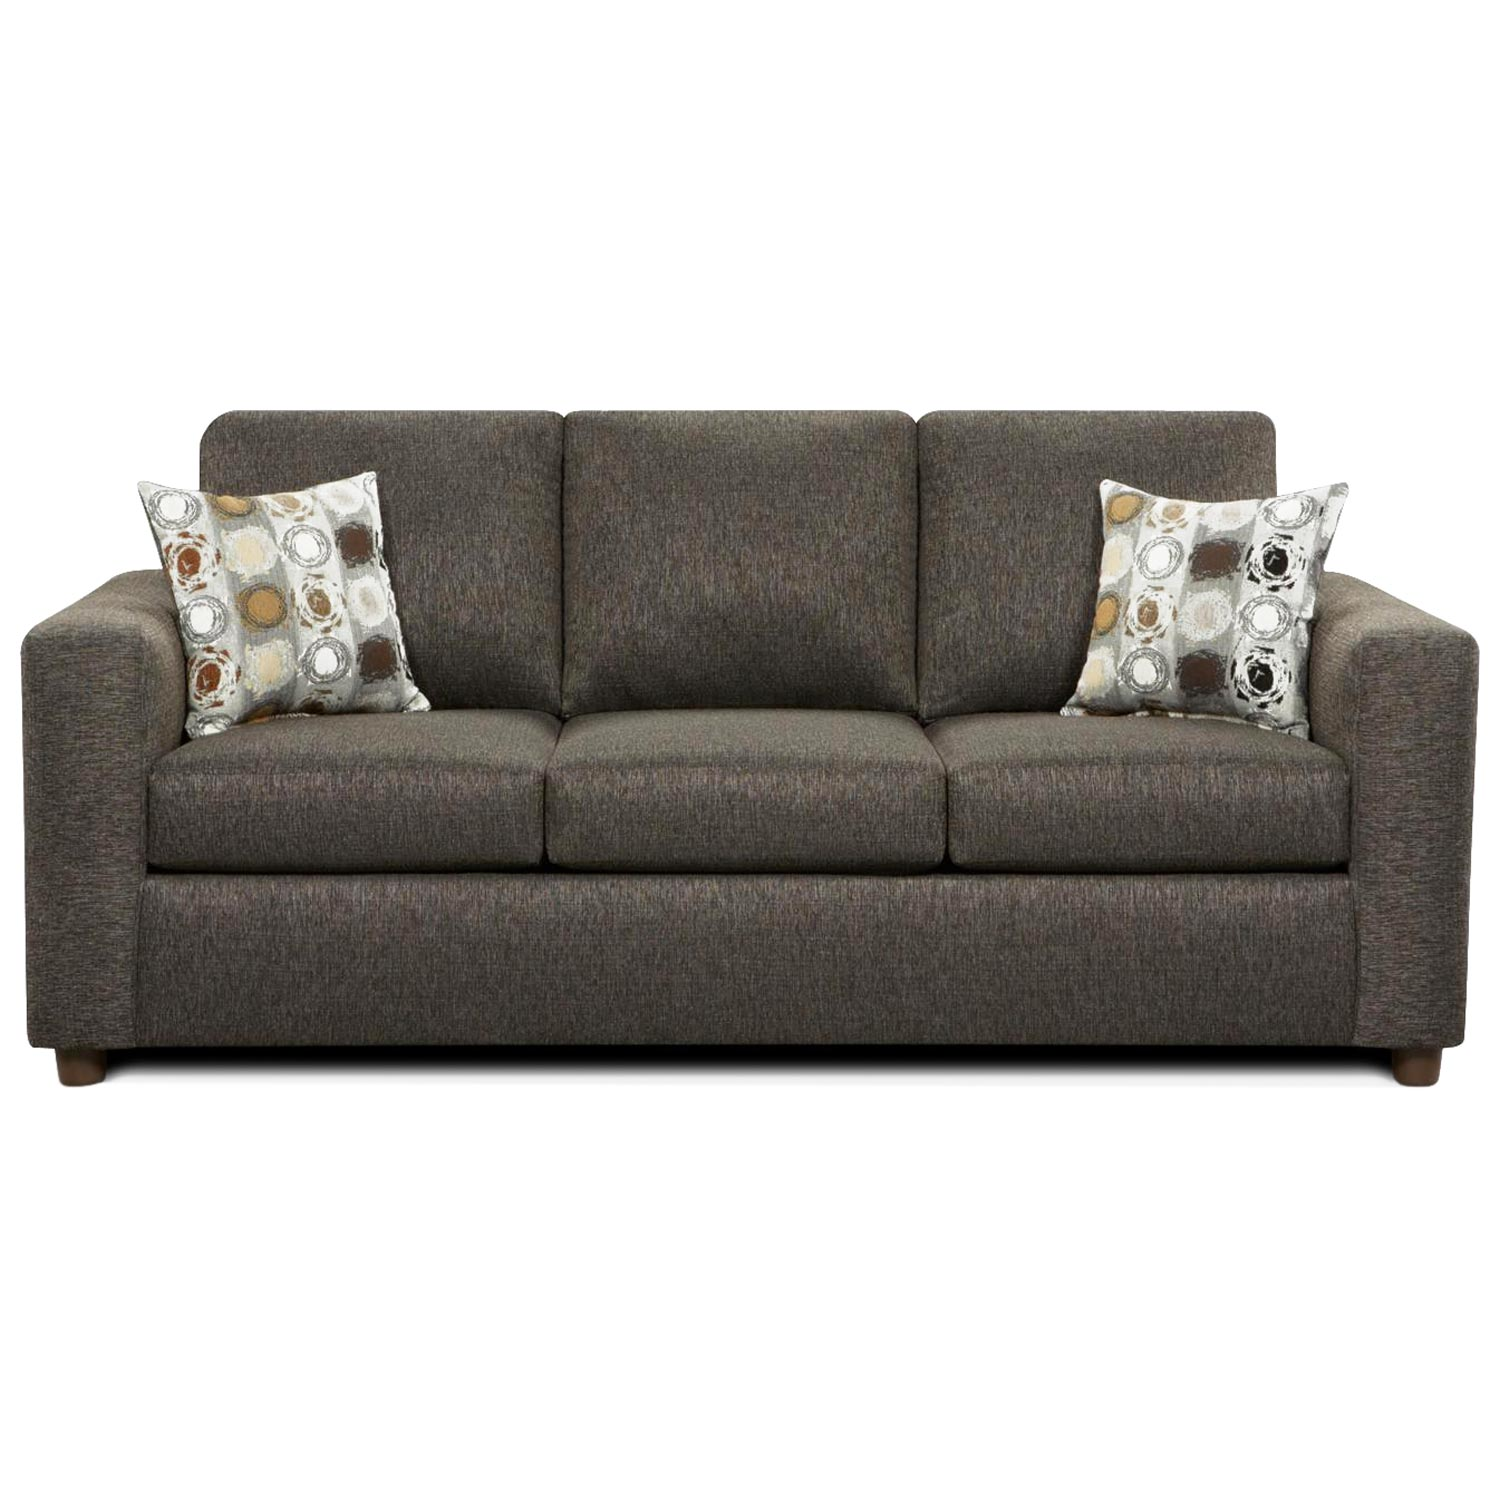 Talbot Contemporary Sleeper Sofa - Vivid Onyx Fabric